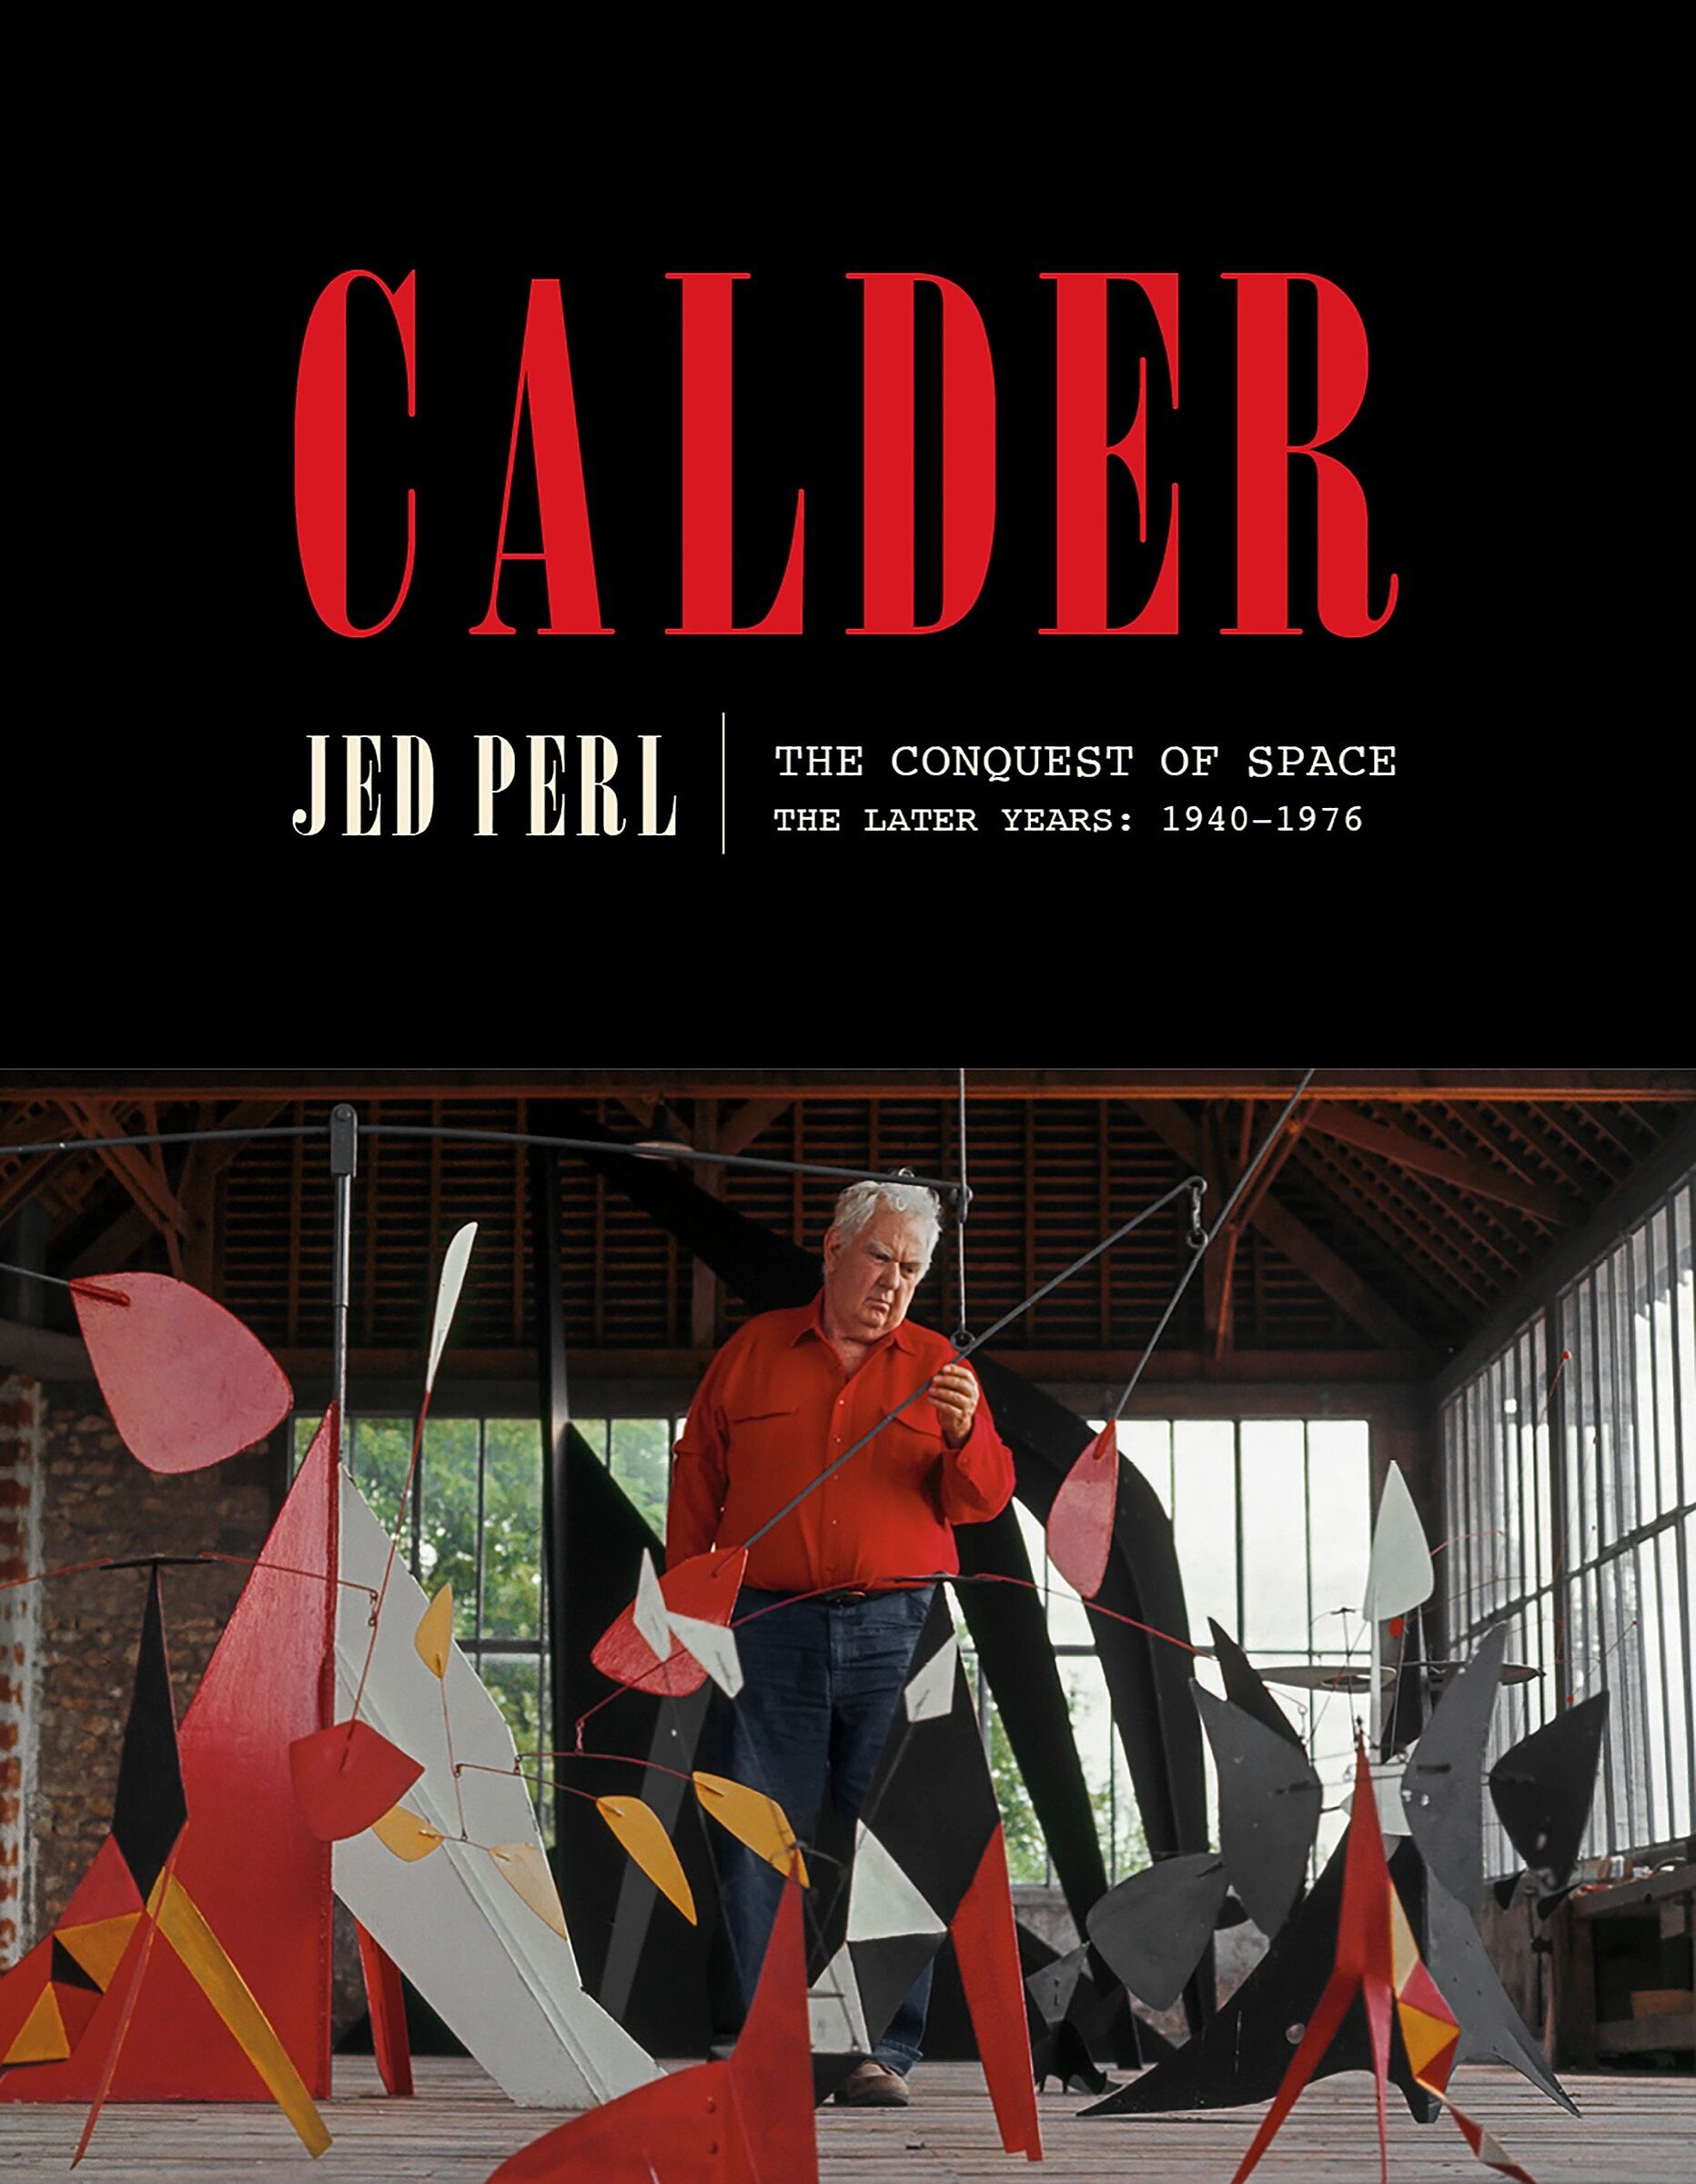 A book cover with a photo of Alexander Calder with his sculptures.